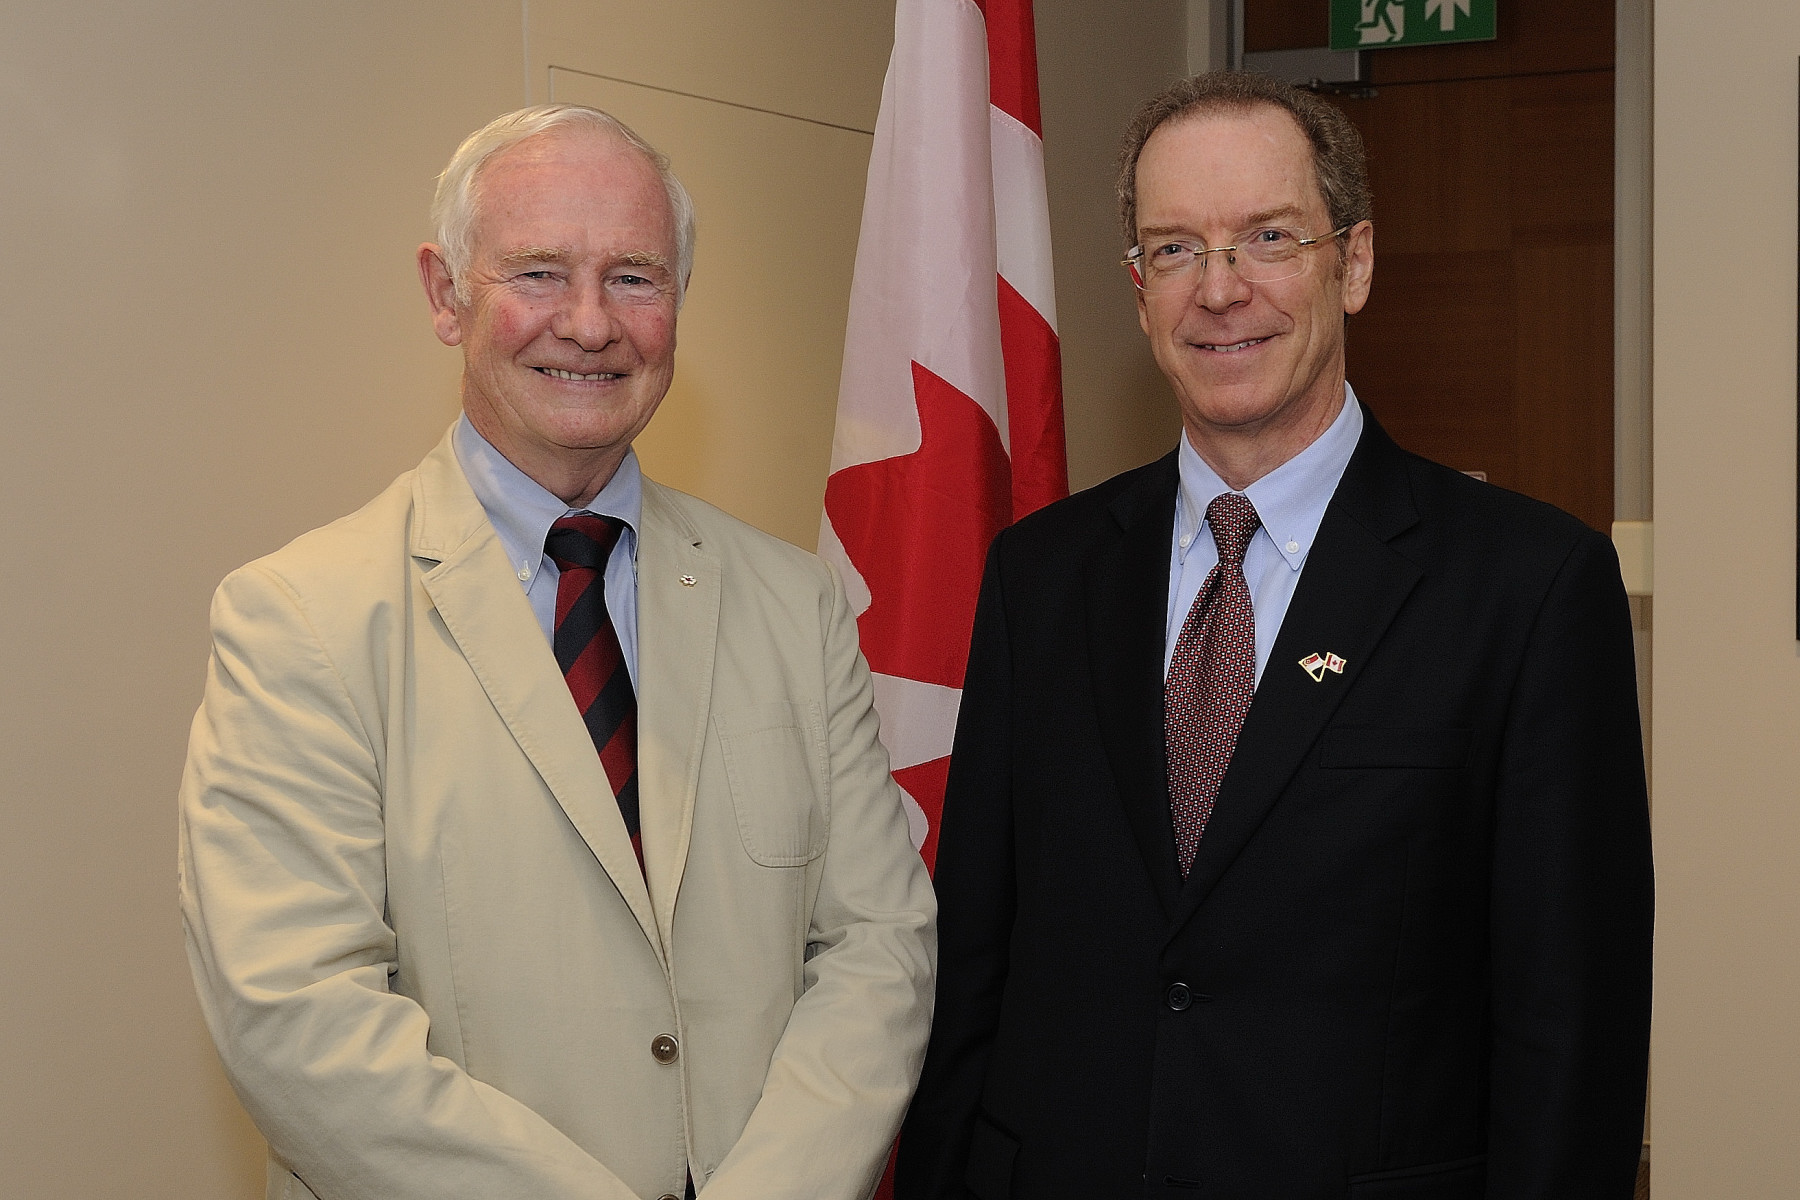 His Excellency met with David Sevigny, High Commissioner of Canada to Singapore.